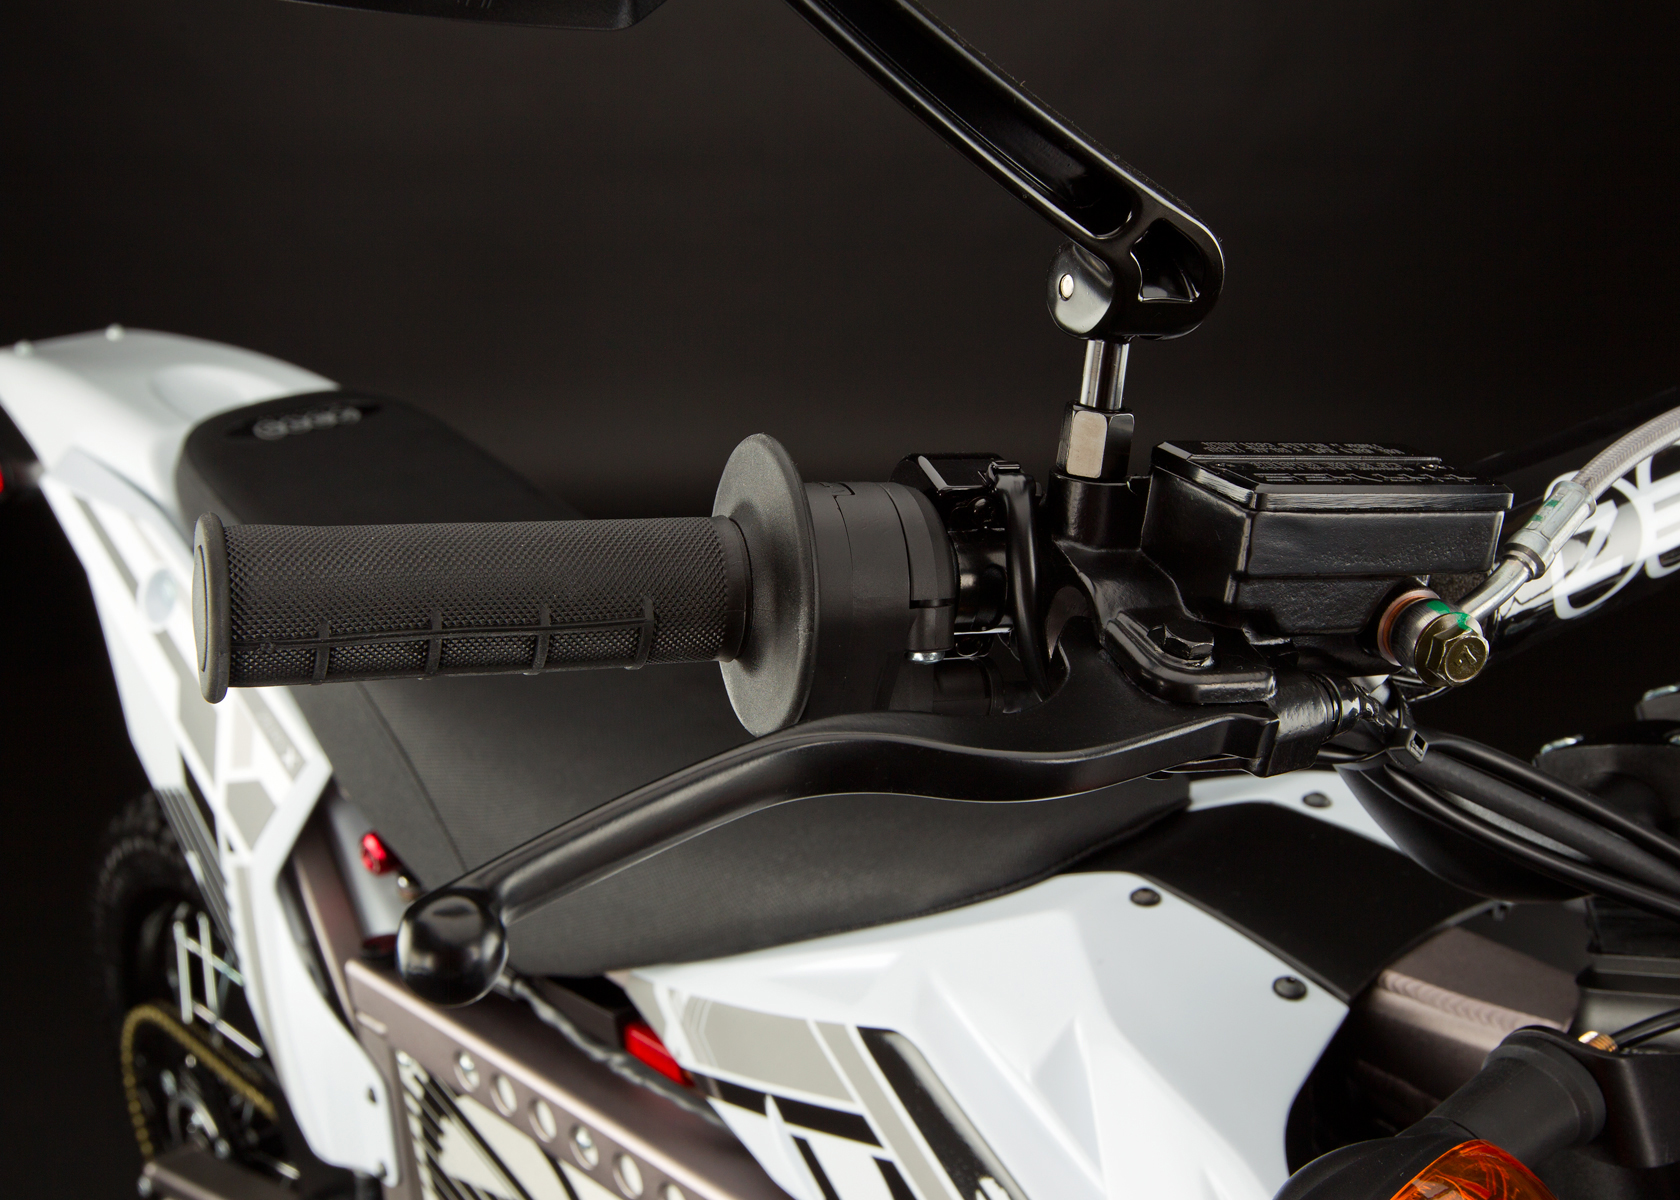 2012 Zero X Electric Motorcycle: Hand Brake